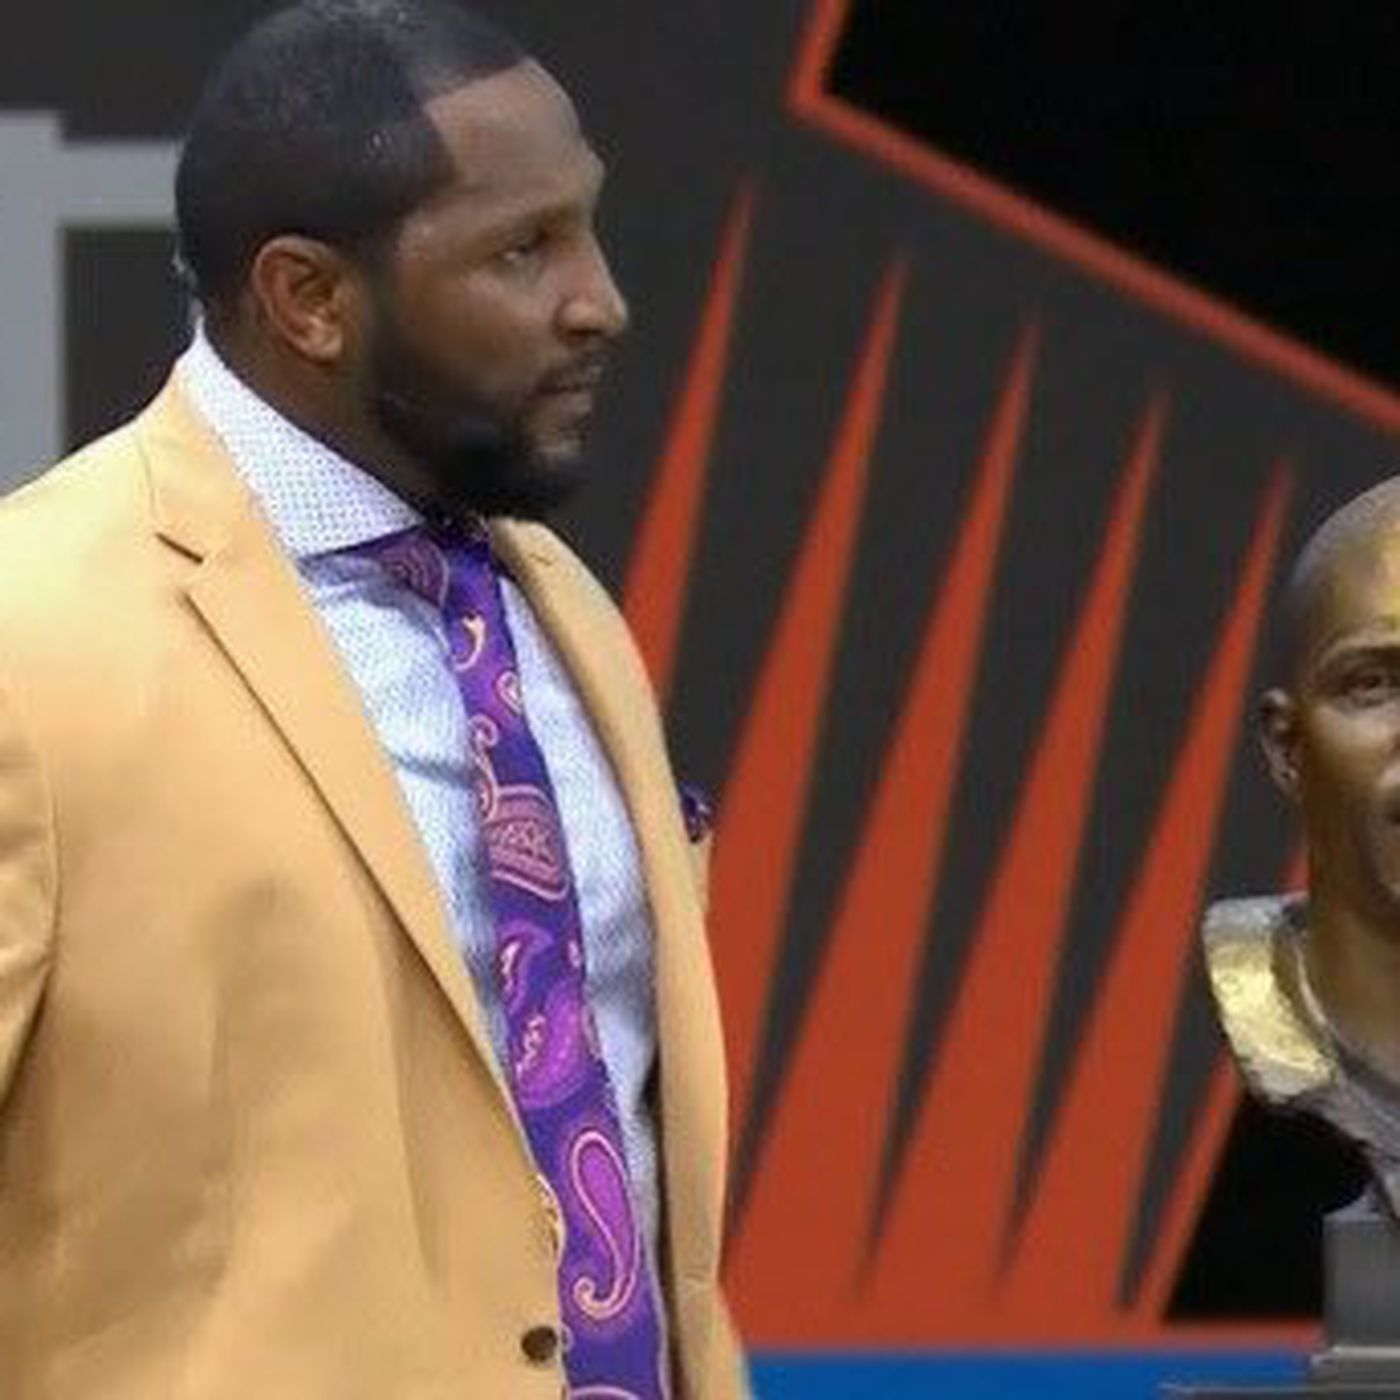 finest selection 1e09b d1467 Ray Lewis' Hall of Fame bust looks like ... - SBNation.com